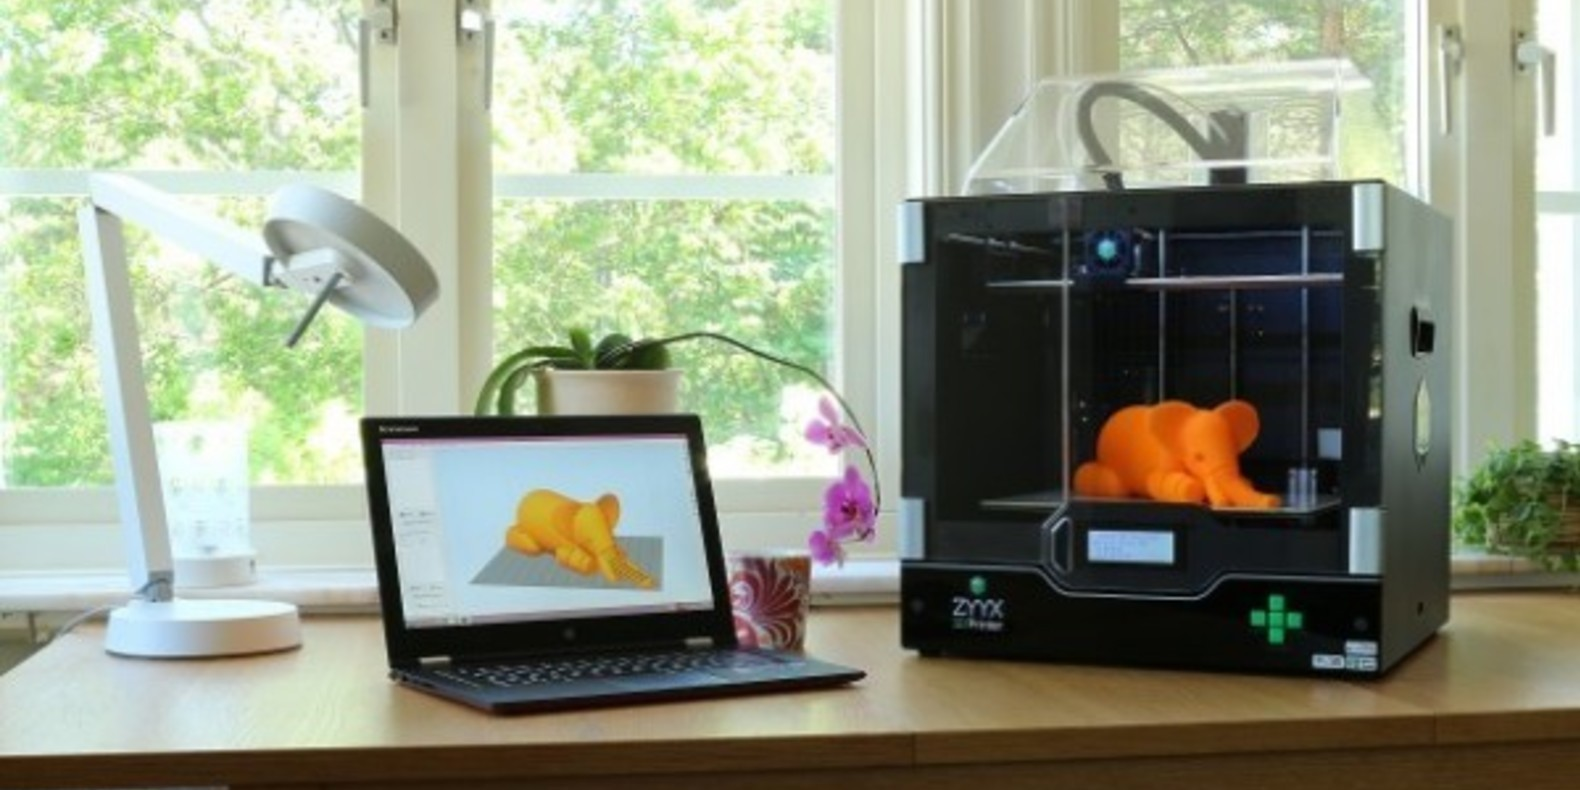 http://fichier3d.fr/wp-content/uploads/2016/02/code-promo-voucher-code-3D-printer-imprimante-3D-réduction-promotion-cheap-cheaper-moins-cher-zyyx.jpg